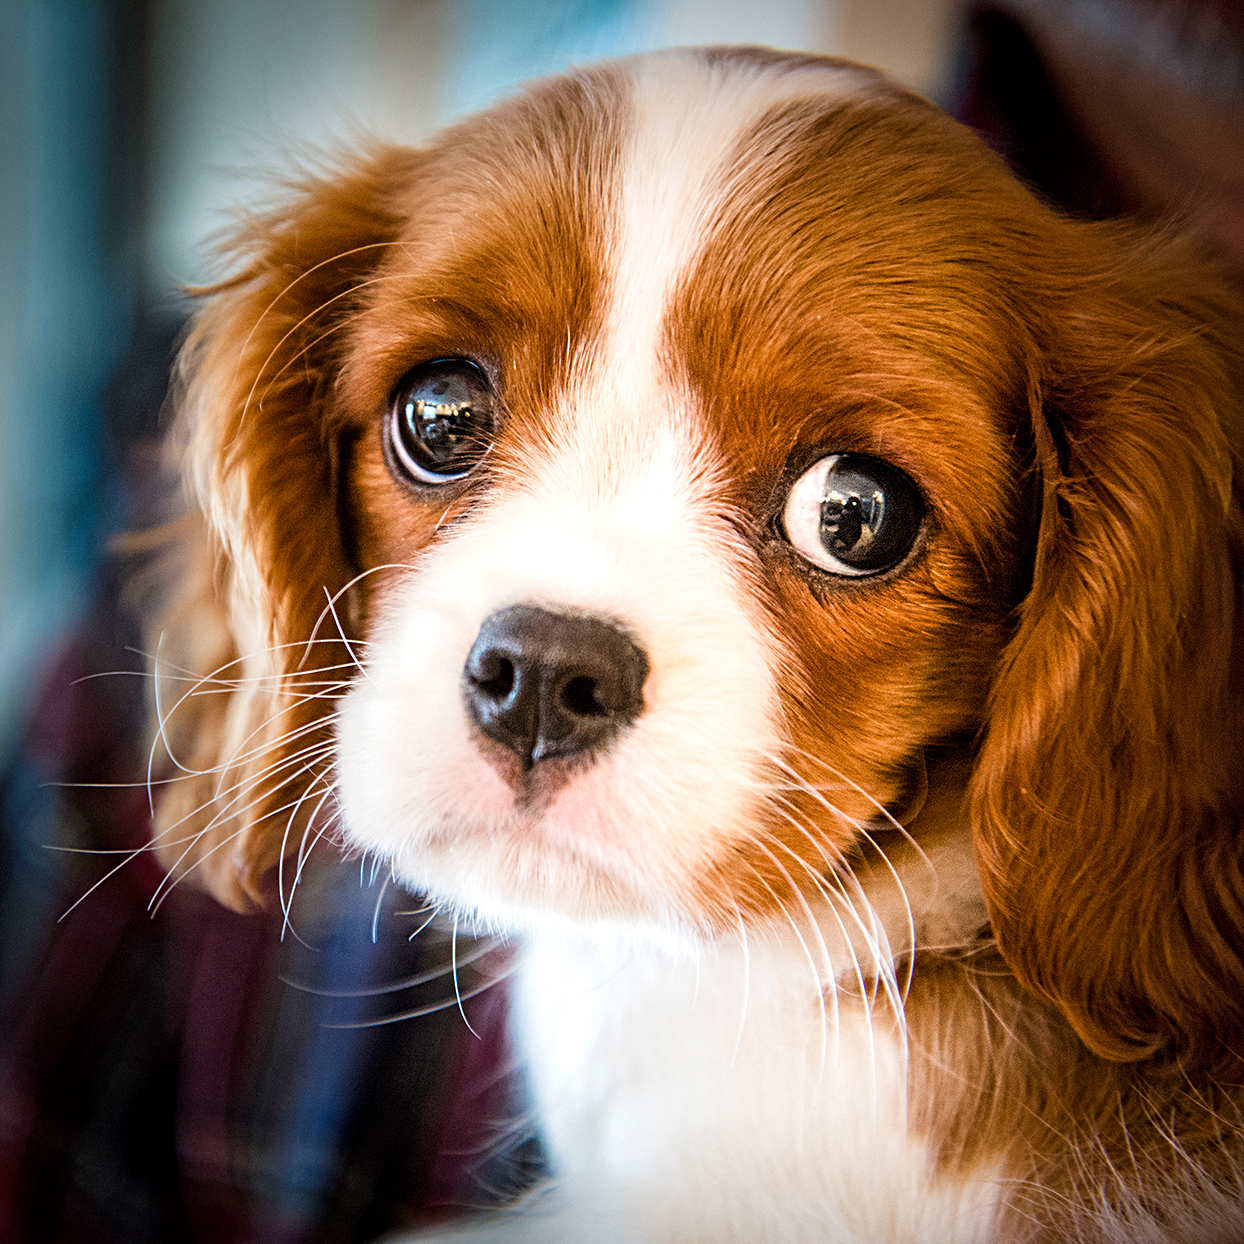 closeup of a king cavalier charles spaniel puppy looking with puppy eyes